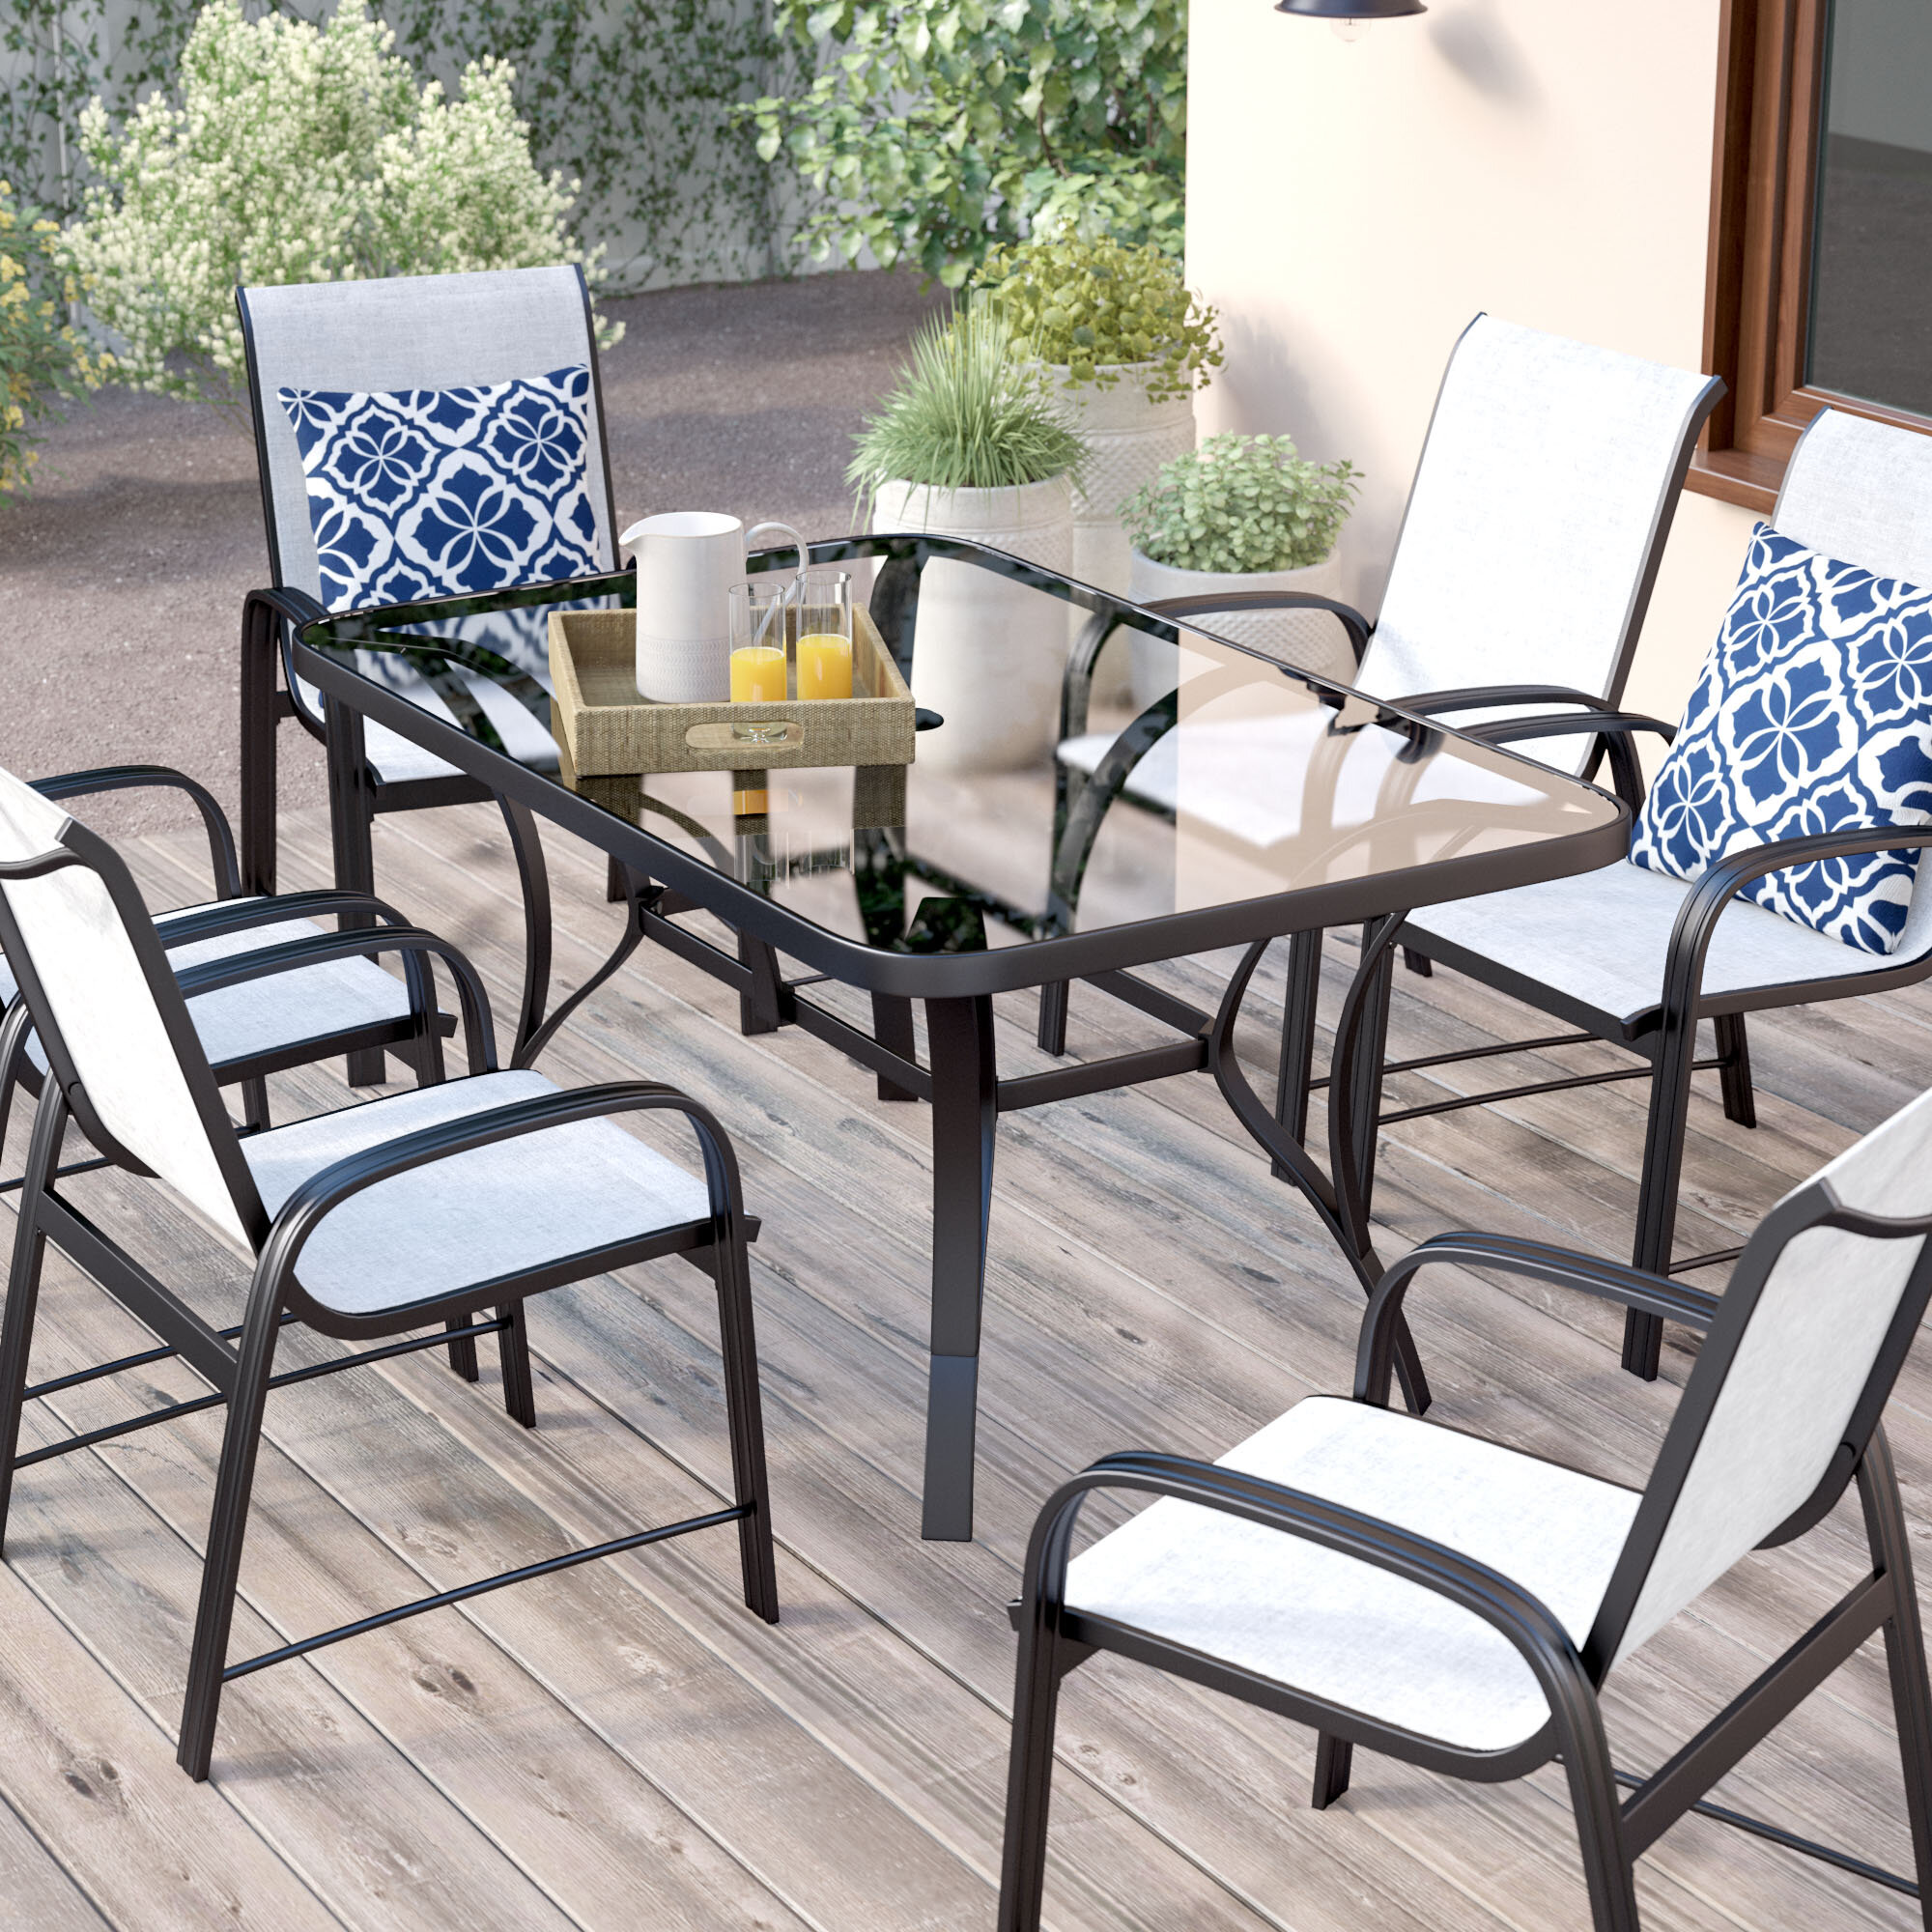 furniture aluminium recycled pvc dining charleston fabrics patio set wicker pipe plastic cast